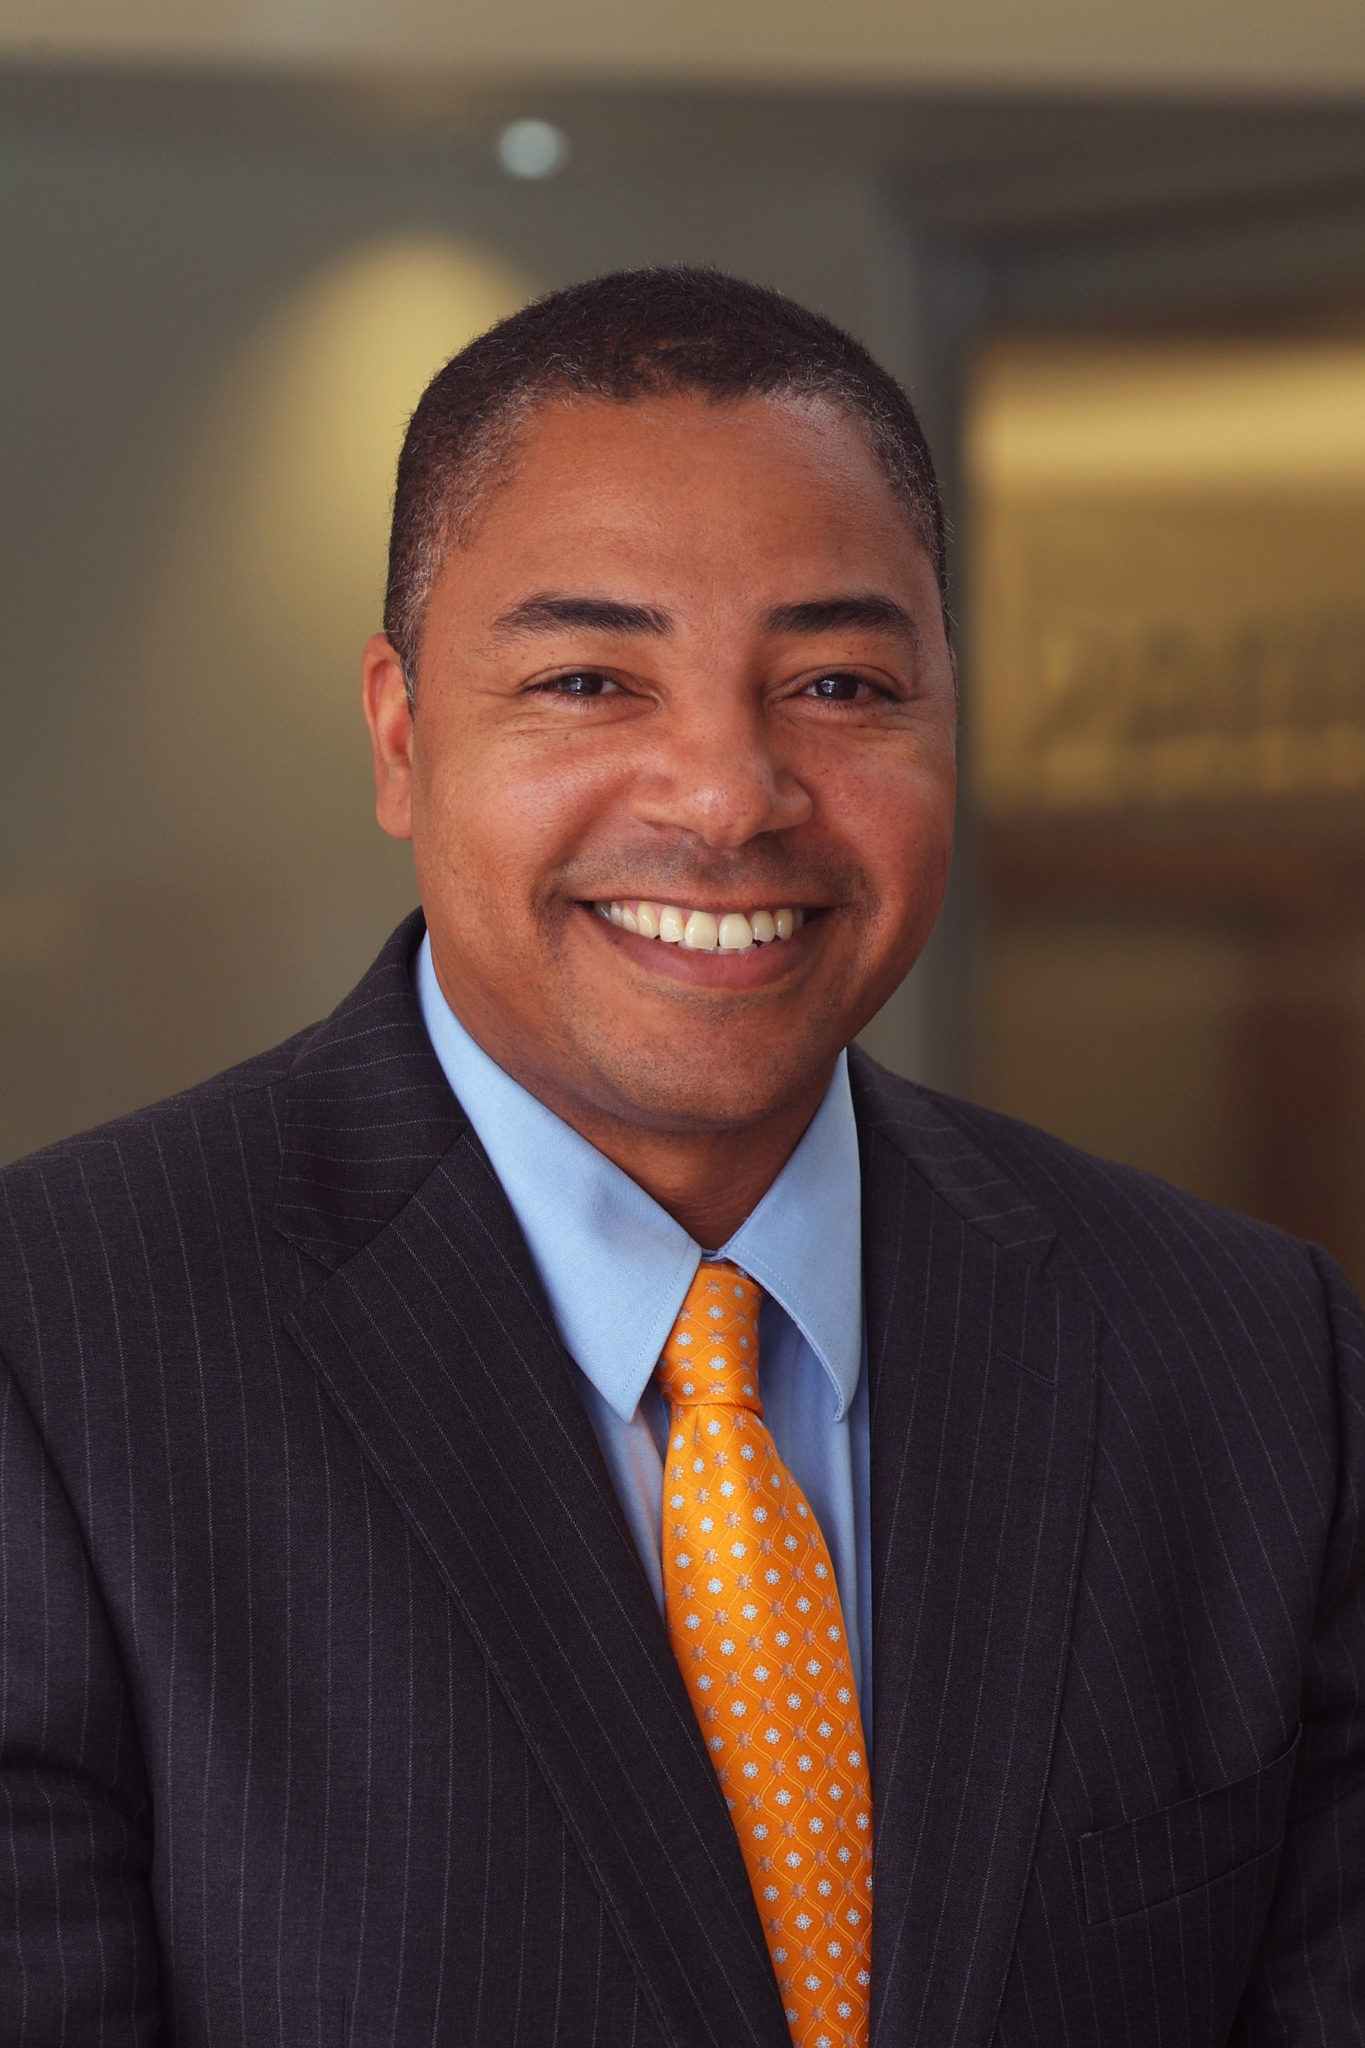 Outgoing executive director of the Denver Office of Economic Development, Paul Washington. (Courtesy photo)